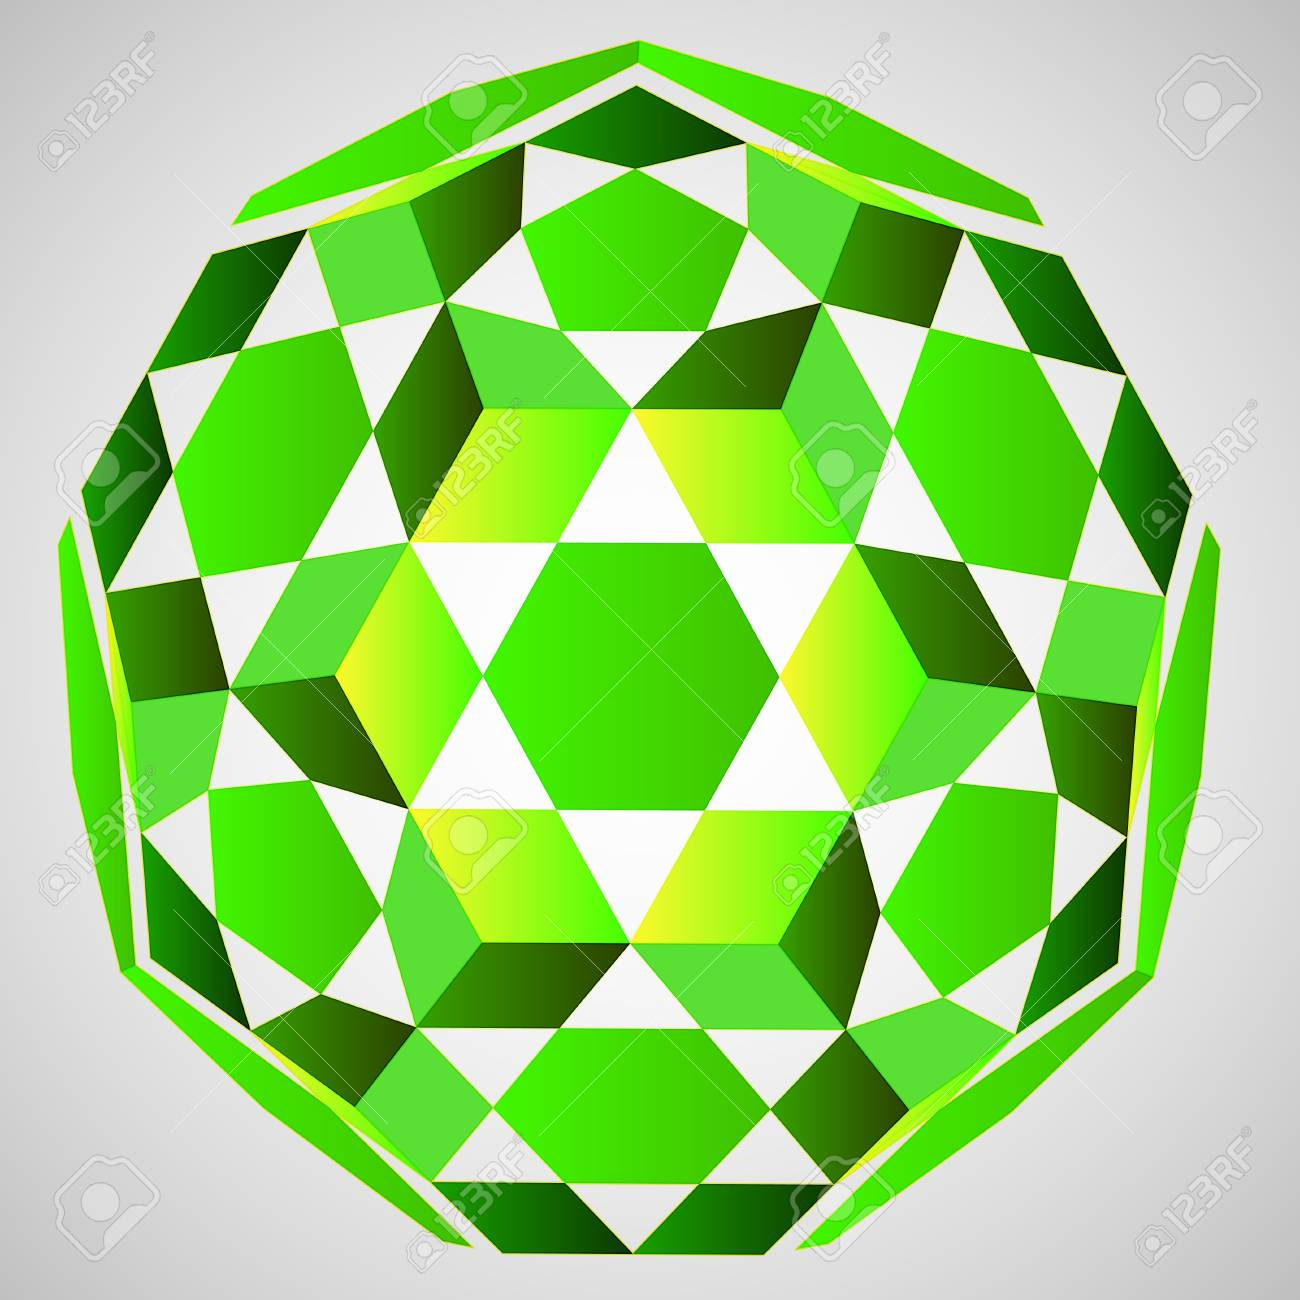 cubic dimensional green layout illustration Stock Vector - 19250473